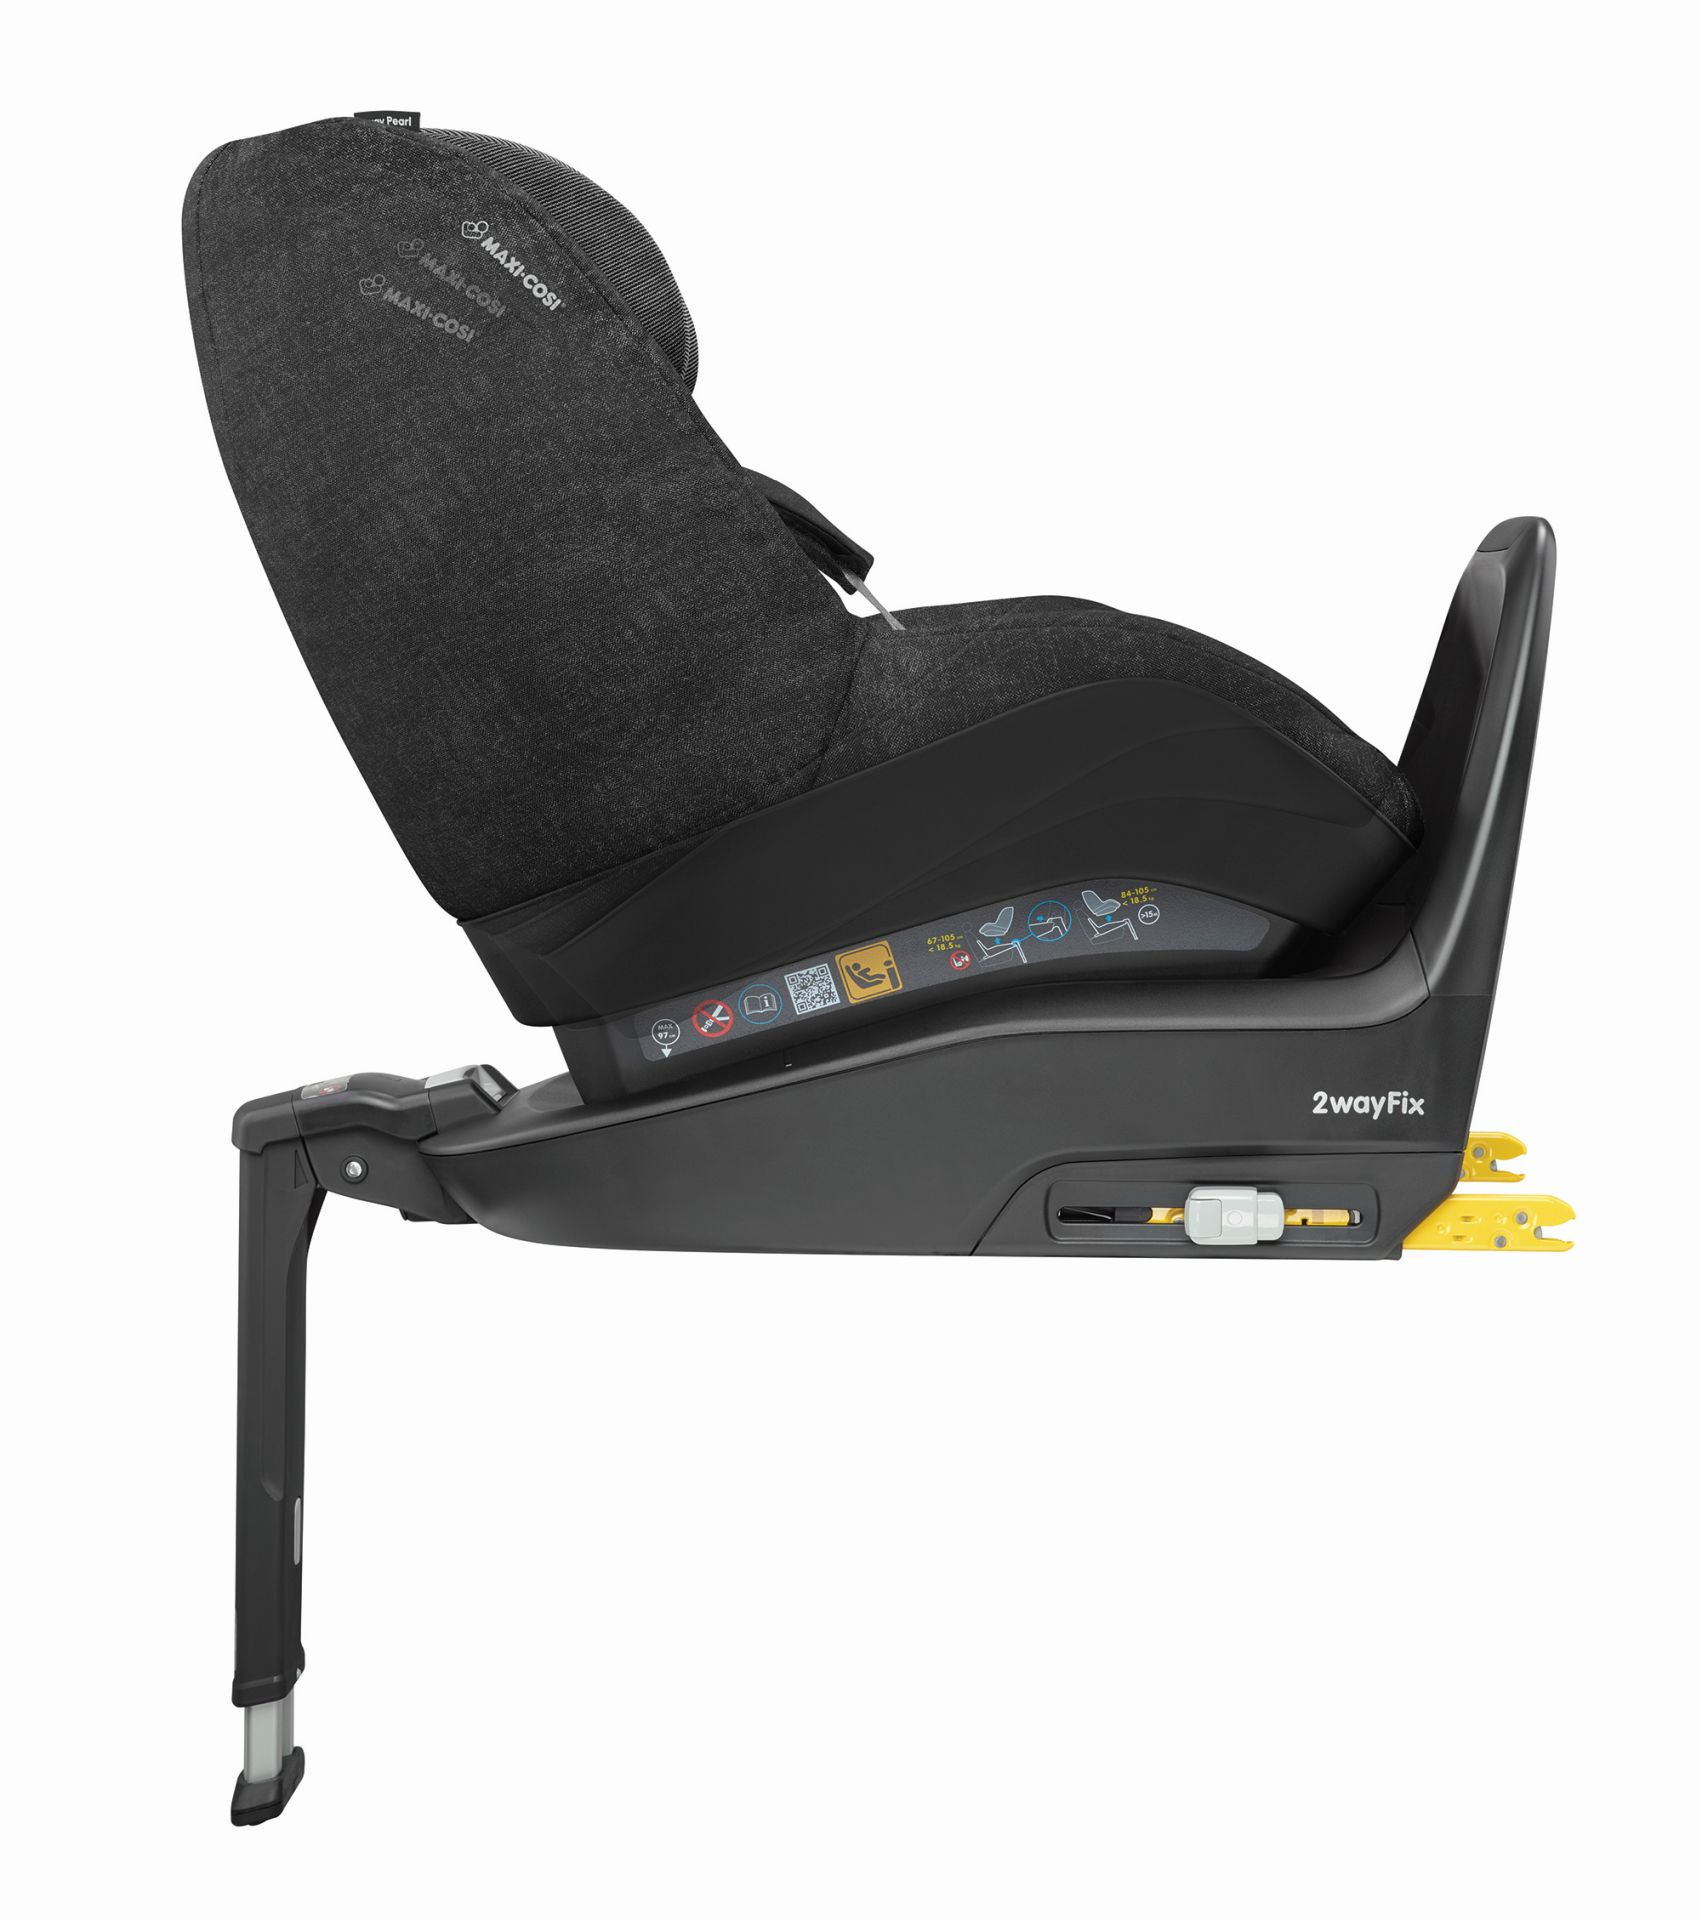 maxi cosi 2 way pearl incl 2 way fix 2018 nomad black buy at kidsroom car seats isofix. Black Bedroom Furniture Sets. Home Design Ideas